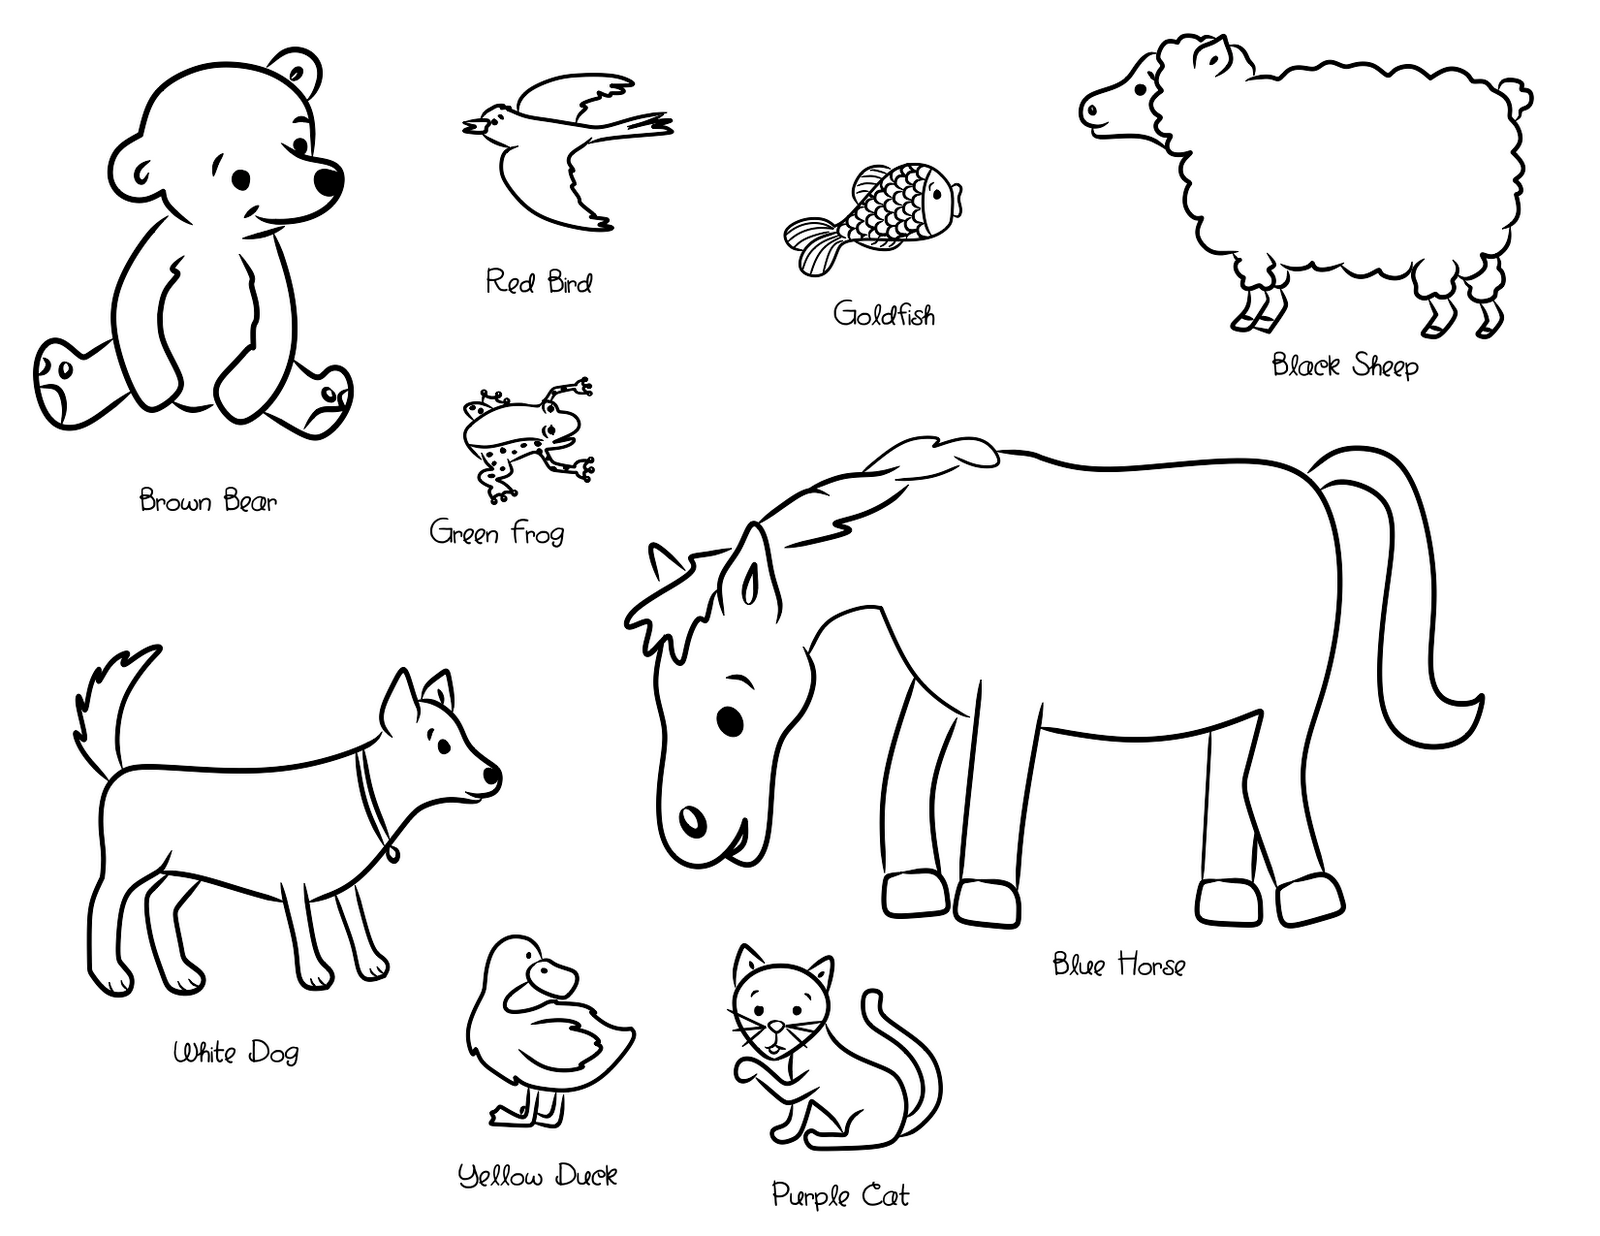 Brown Bear Eric Carle Animals Coloring Pages - Coloring Pages For - Eric Carle Brown Bear PNG